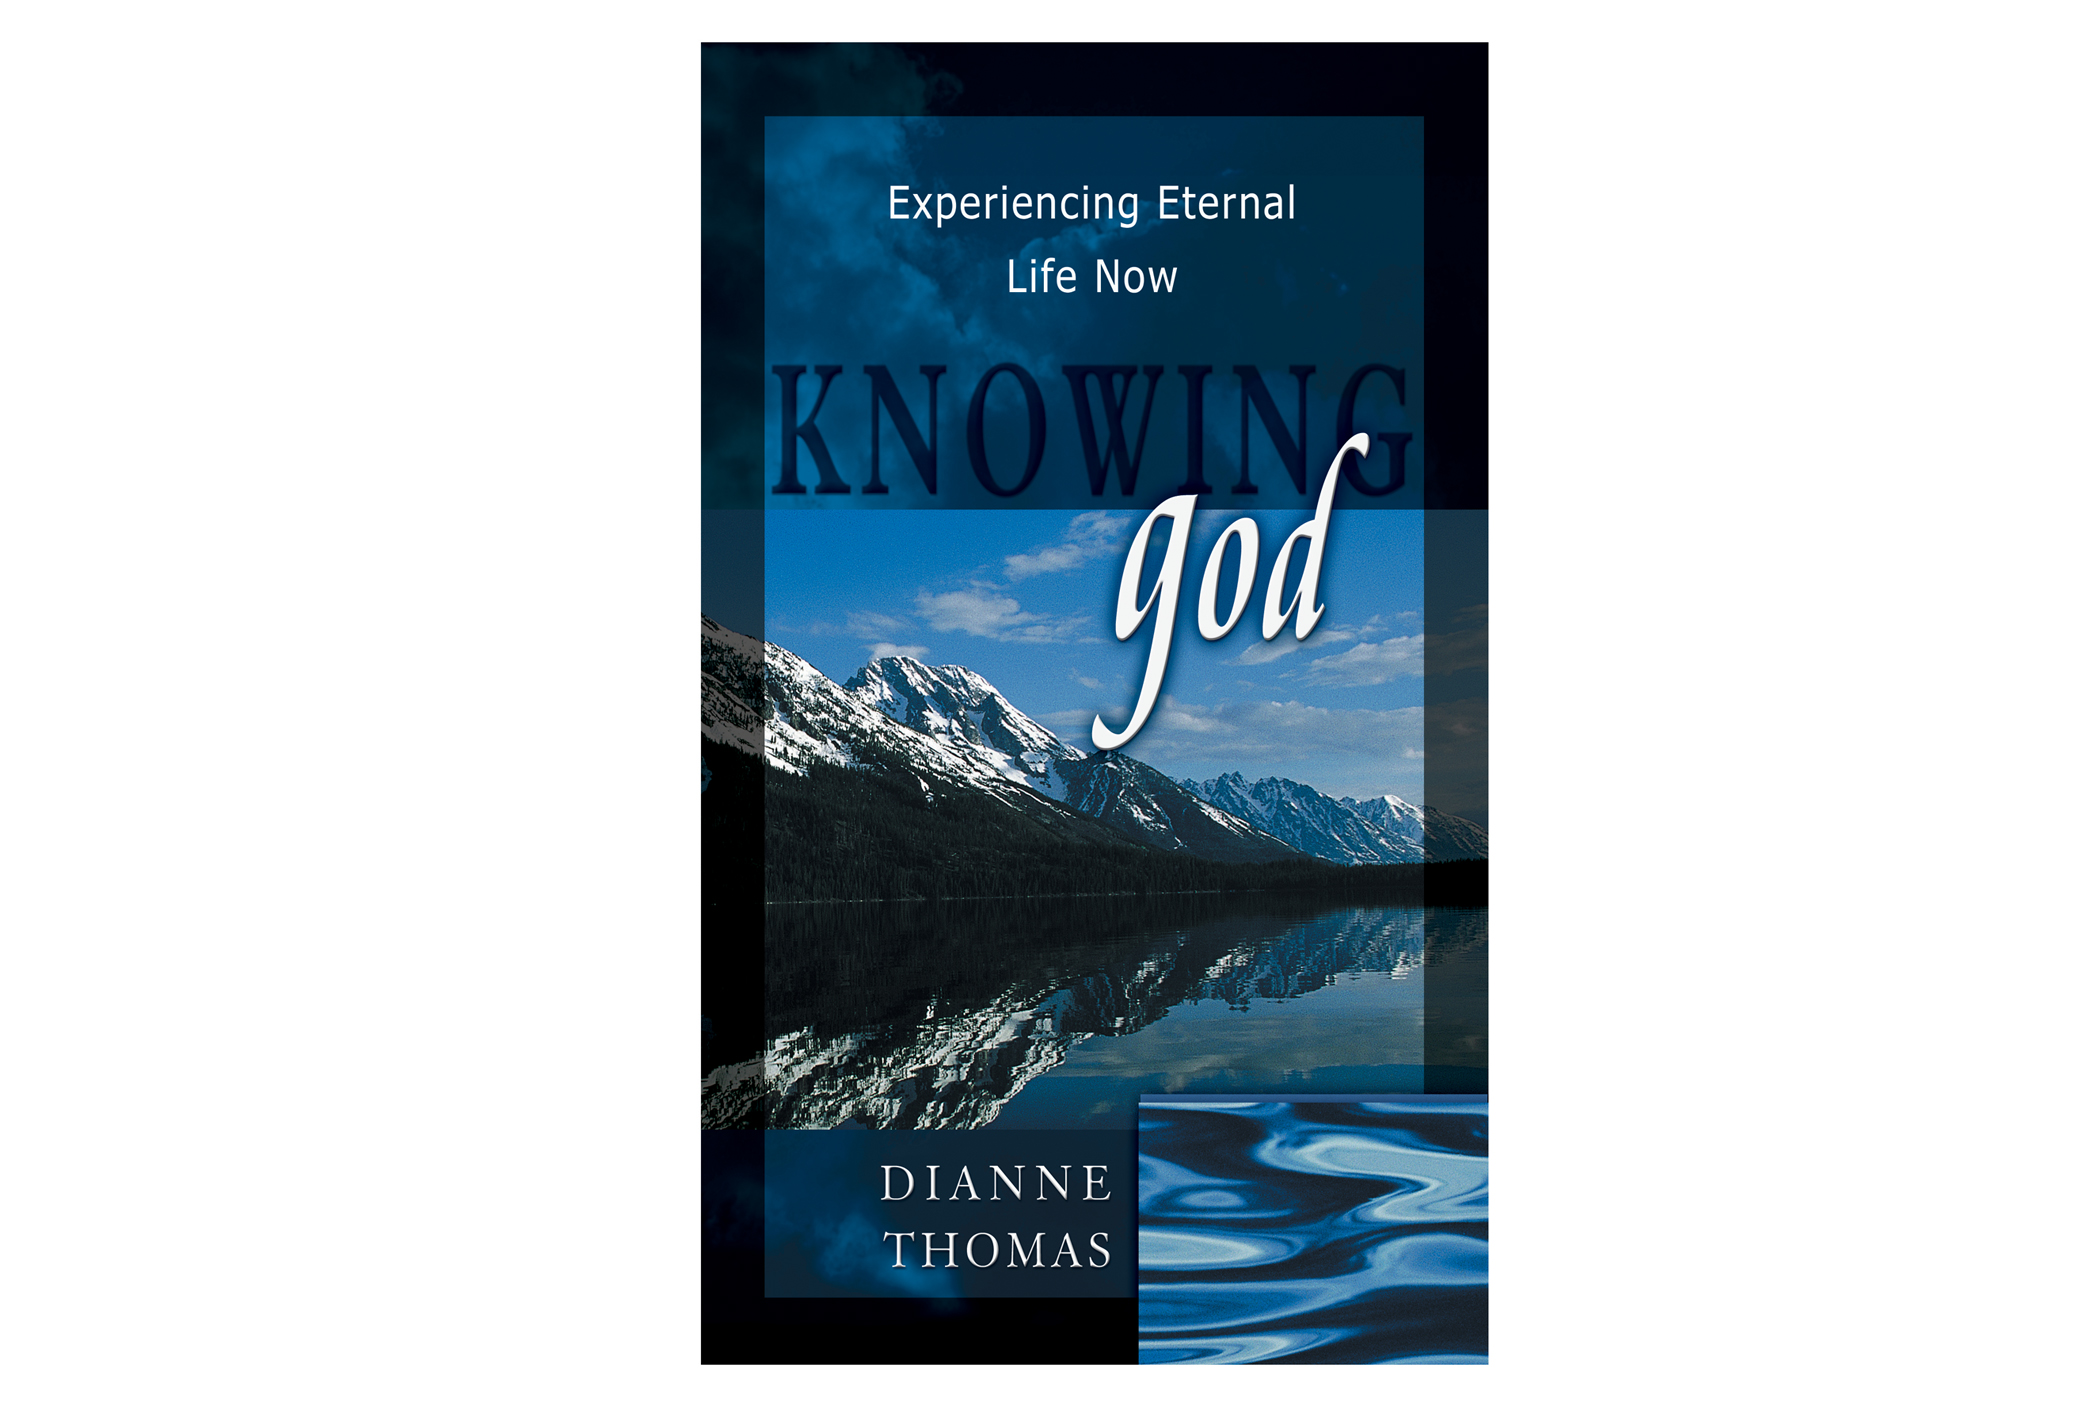 Knowing God: Developing an Intimate, Supernatural Relationship